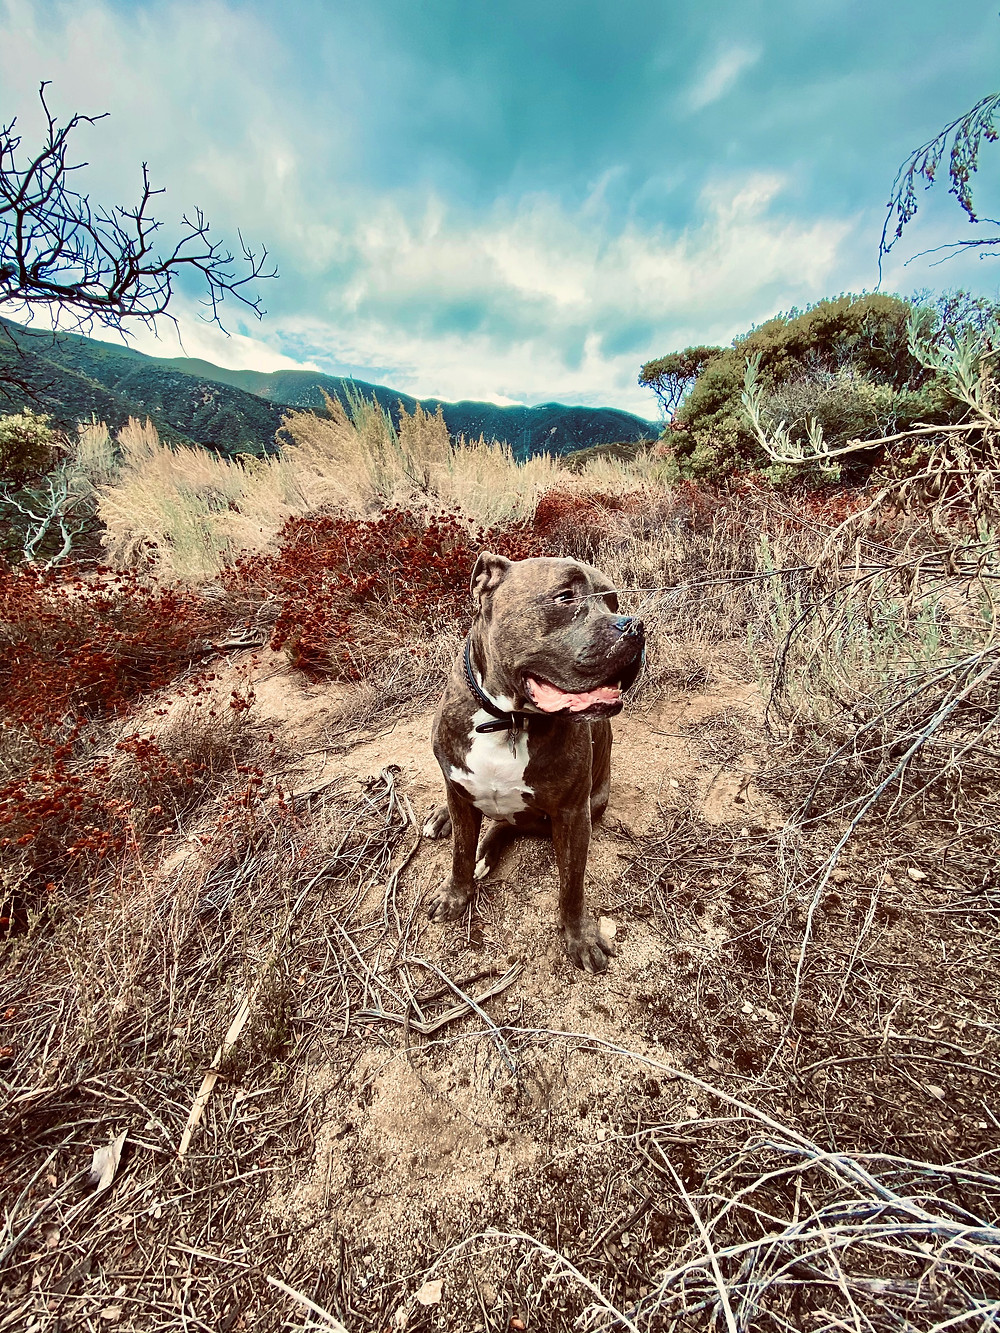 A friendly brindle pit bull named Sampson strikes a glorious pose among the scrub brush atop a hill in Santa Clarita Woodlands Park in California